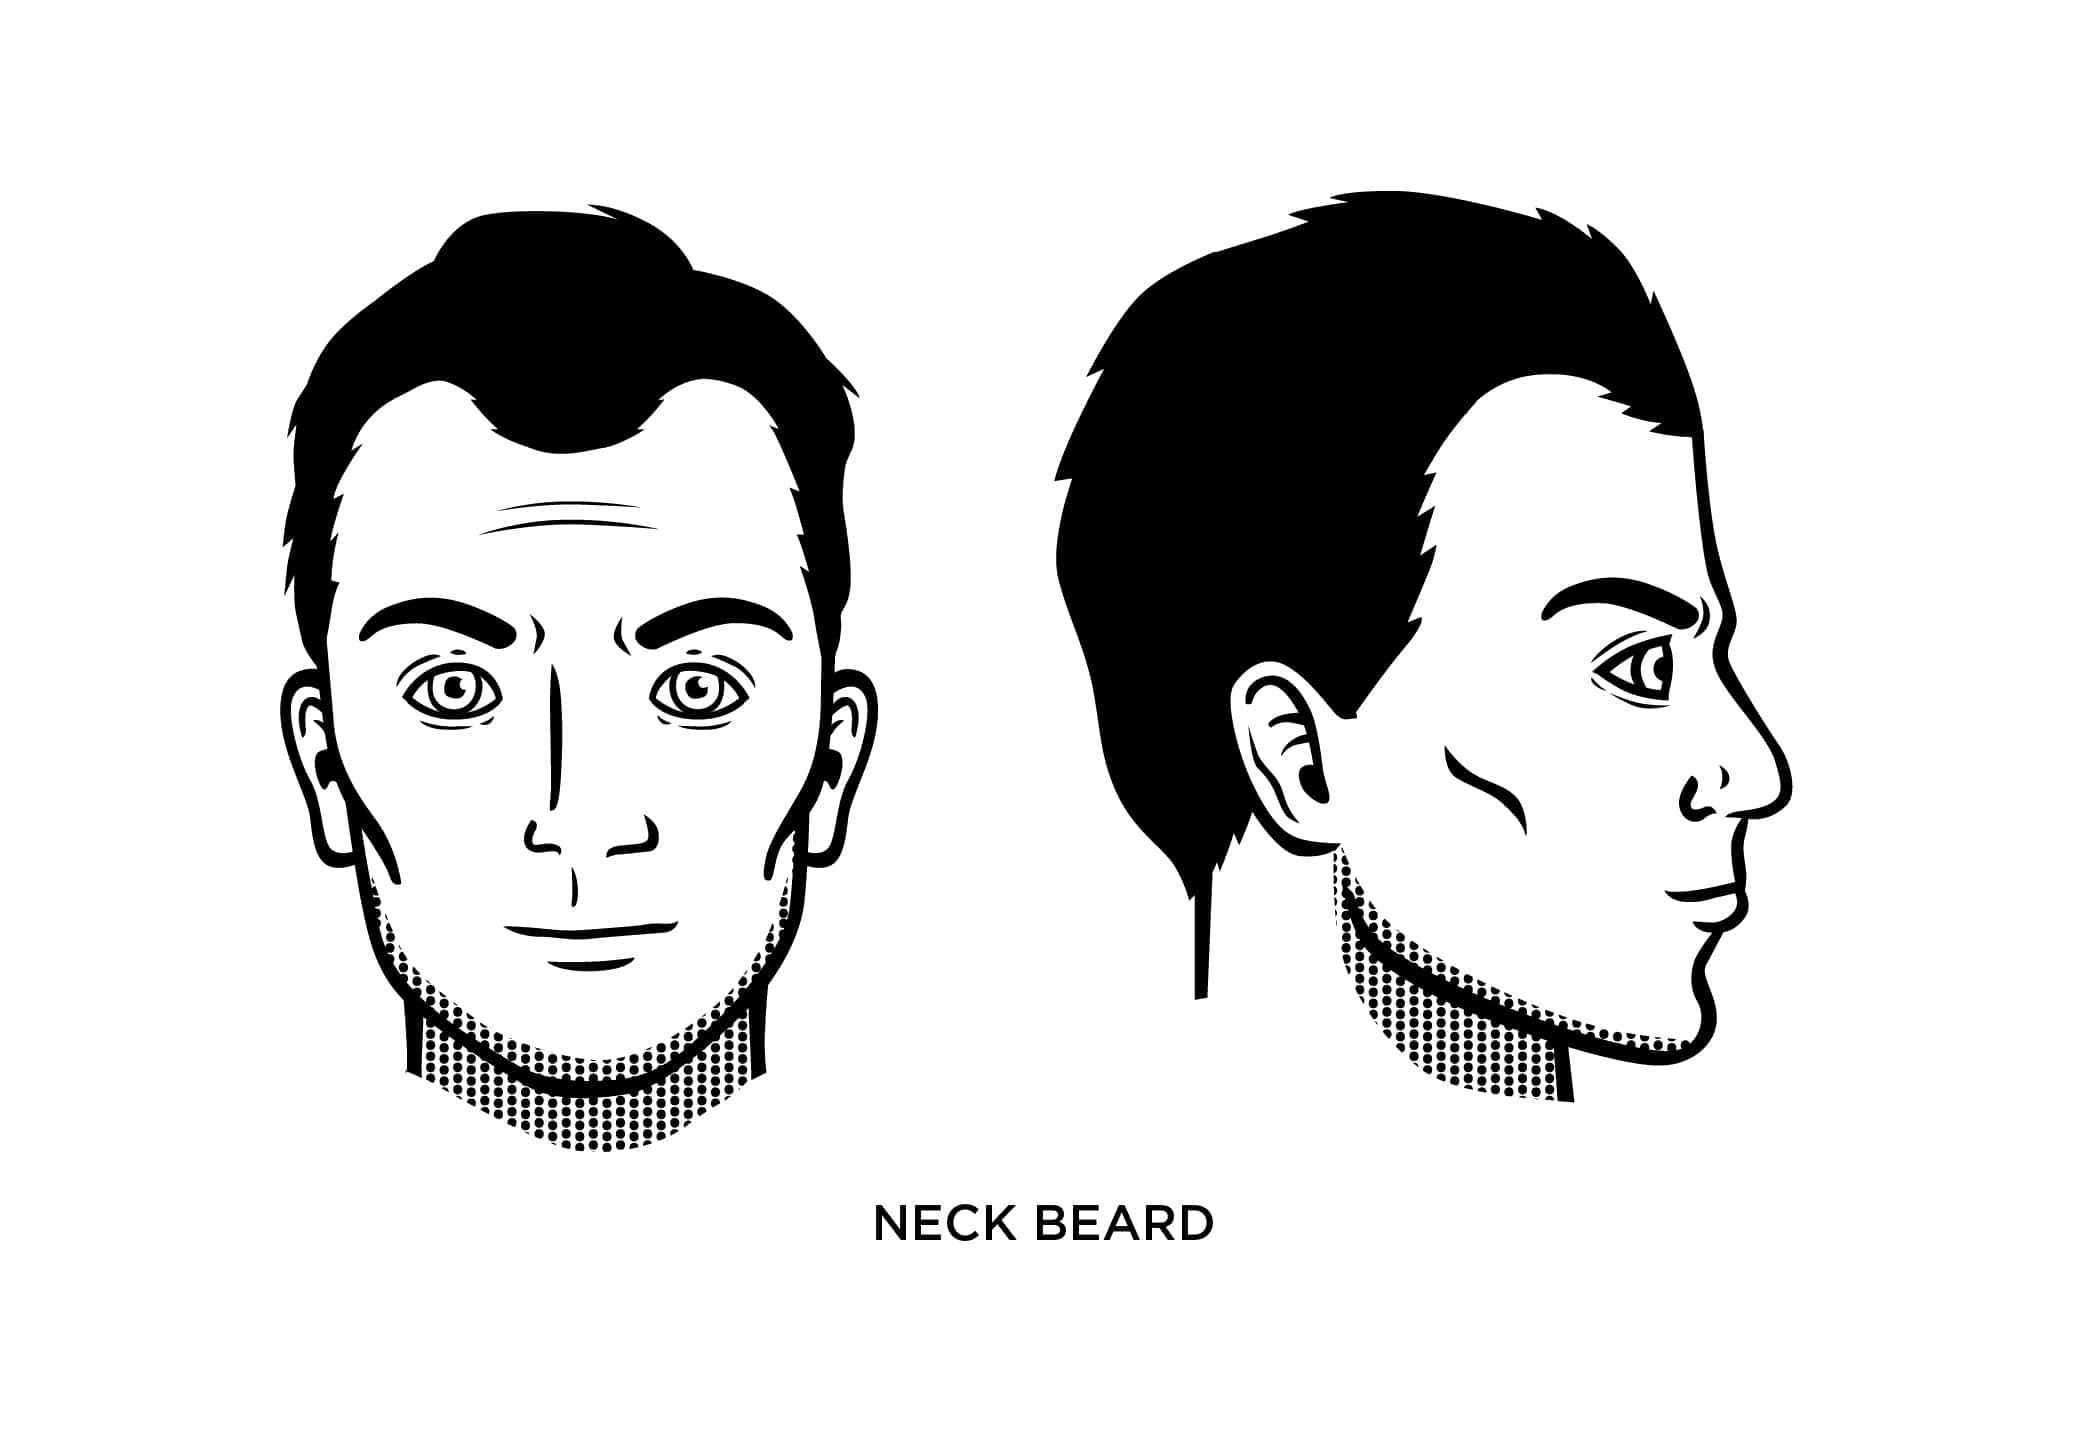 The Neck Beard Style: How to Trim, Guide, Examples, and More!